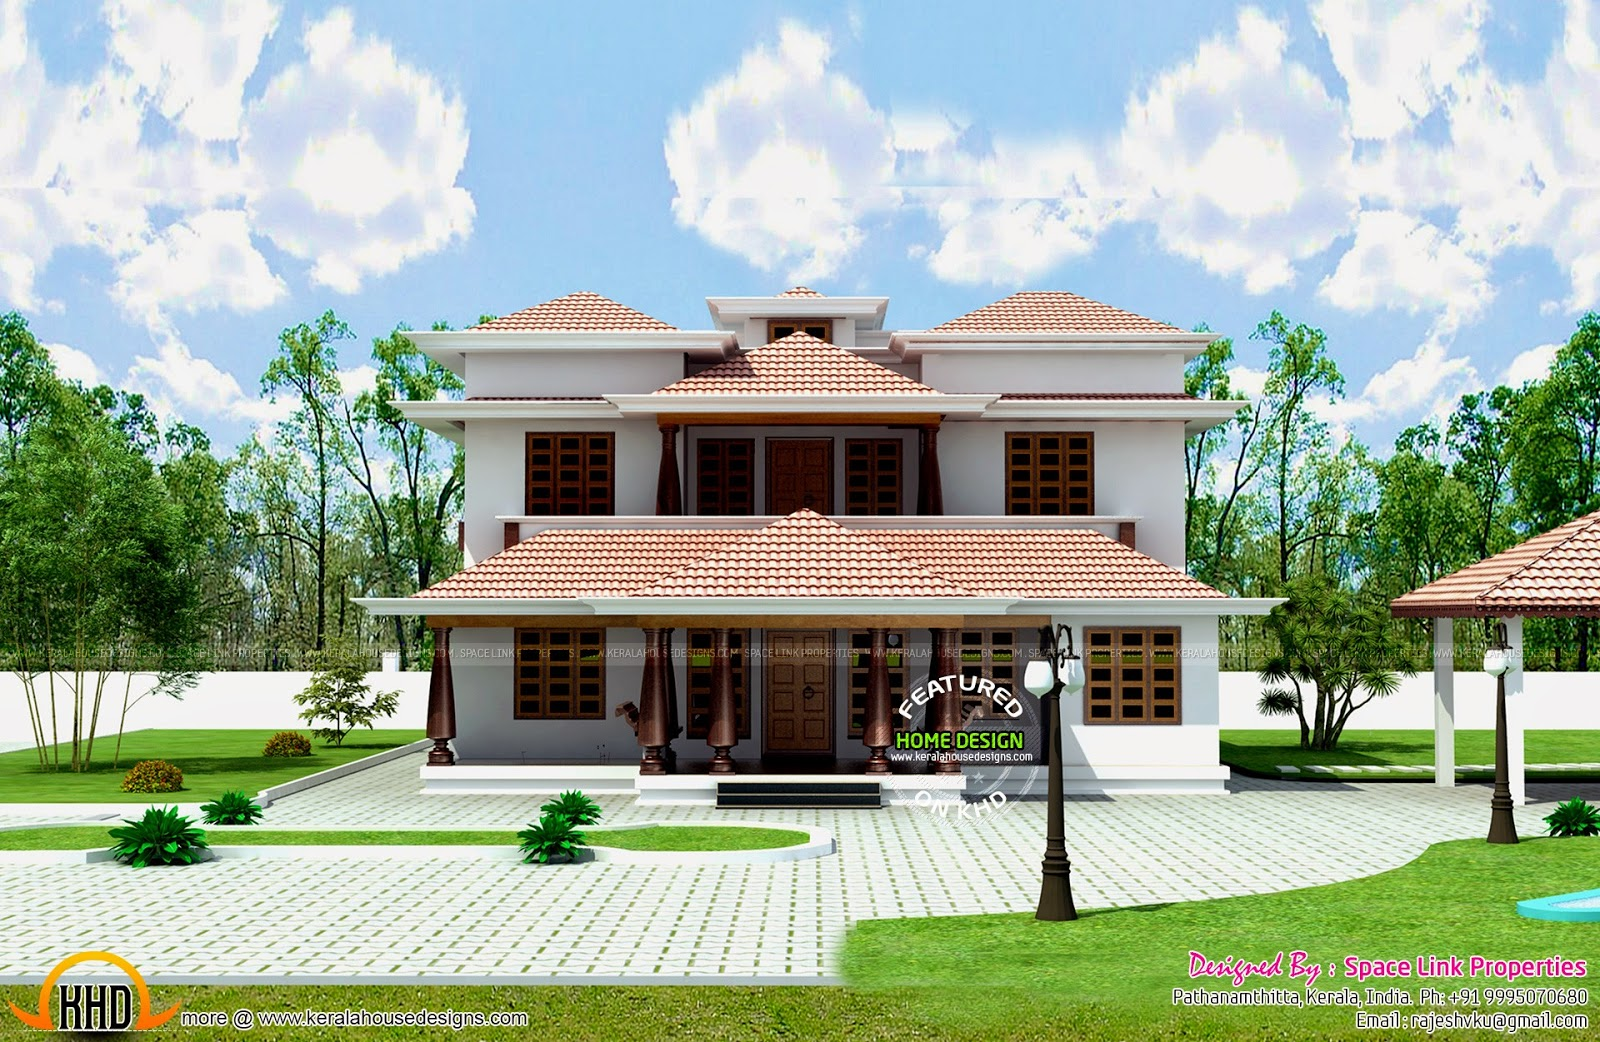 Typical kerala traditional house kerala home design and for Traditional house style